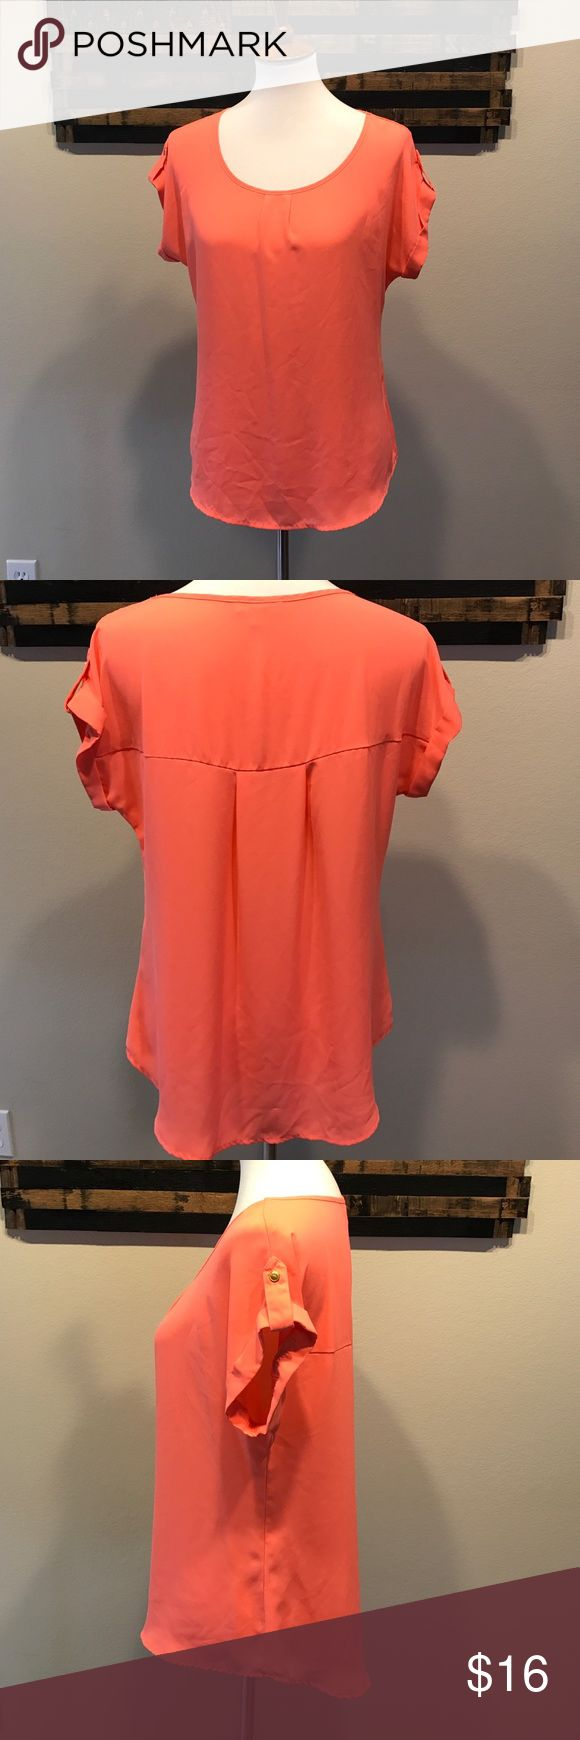 Coral blouse. Silky coral loose hanging blouse. Tops Blouses